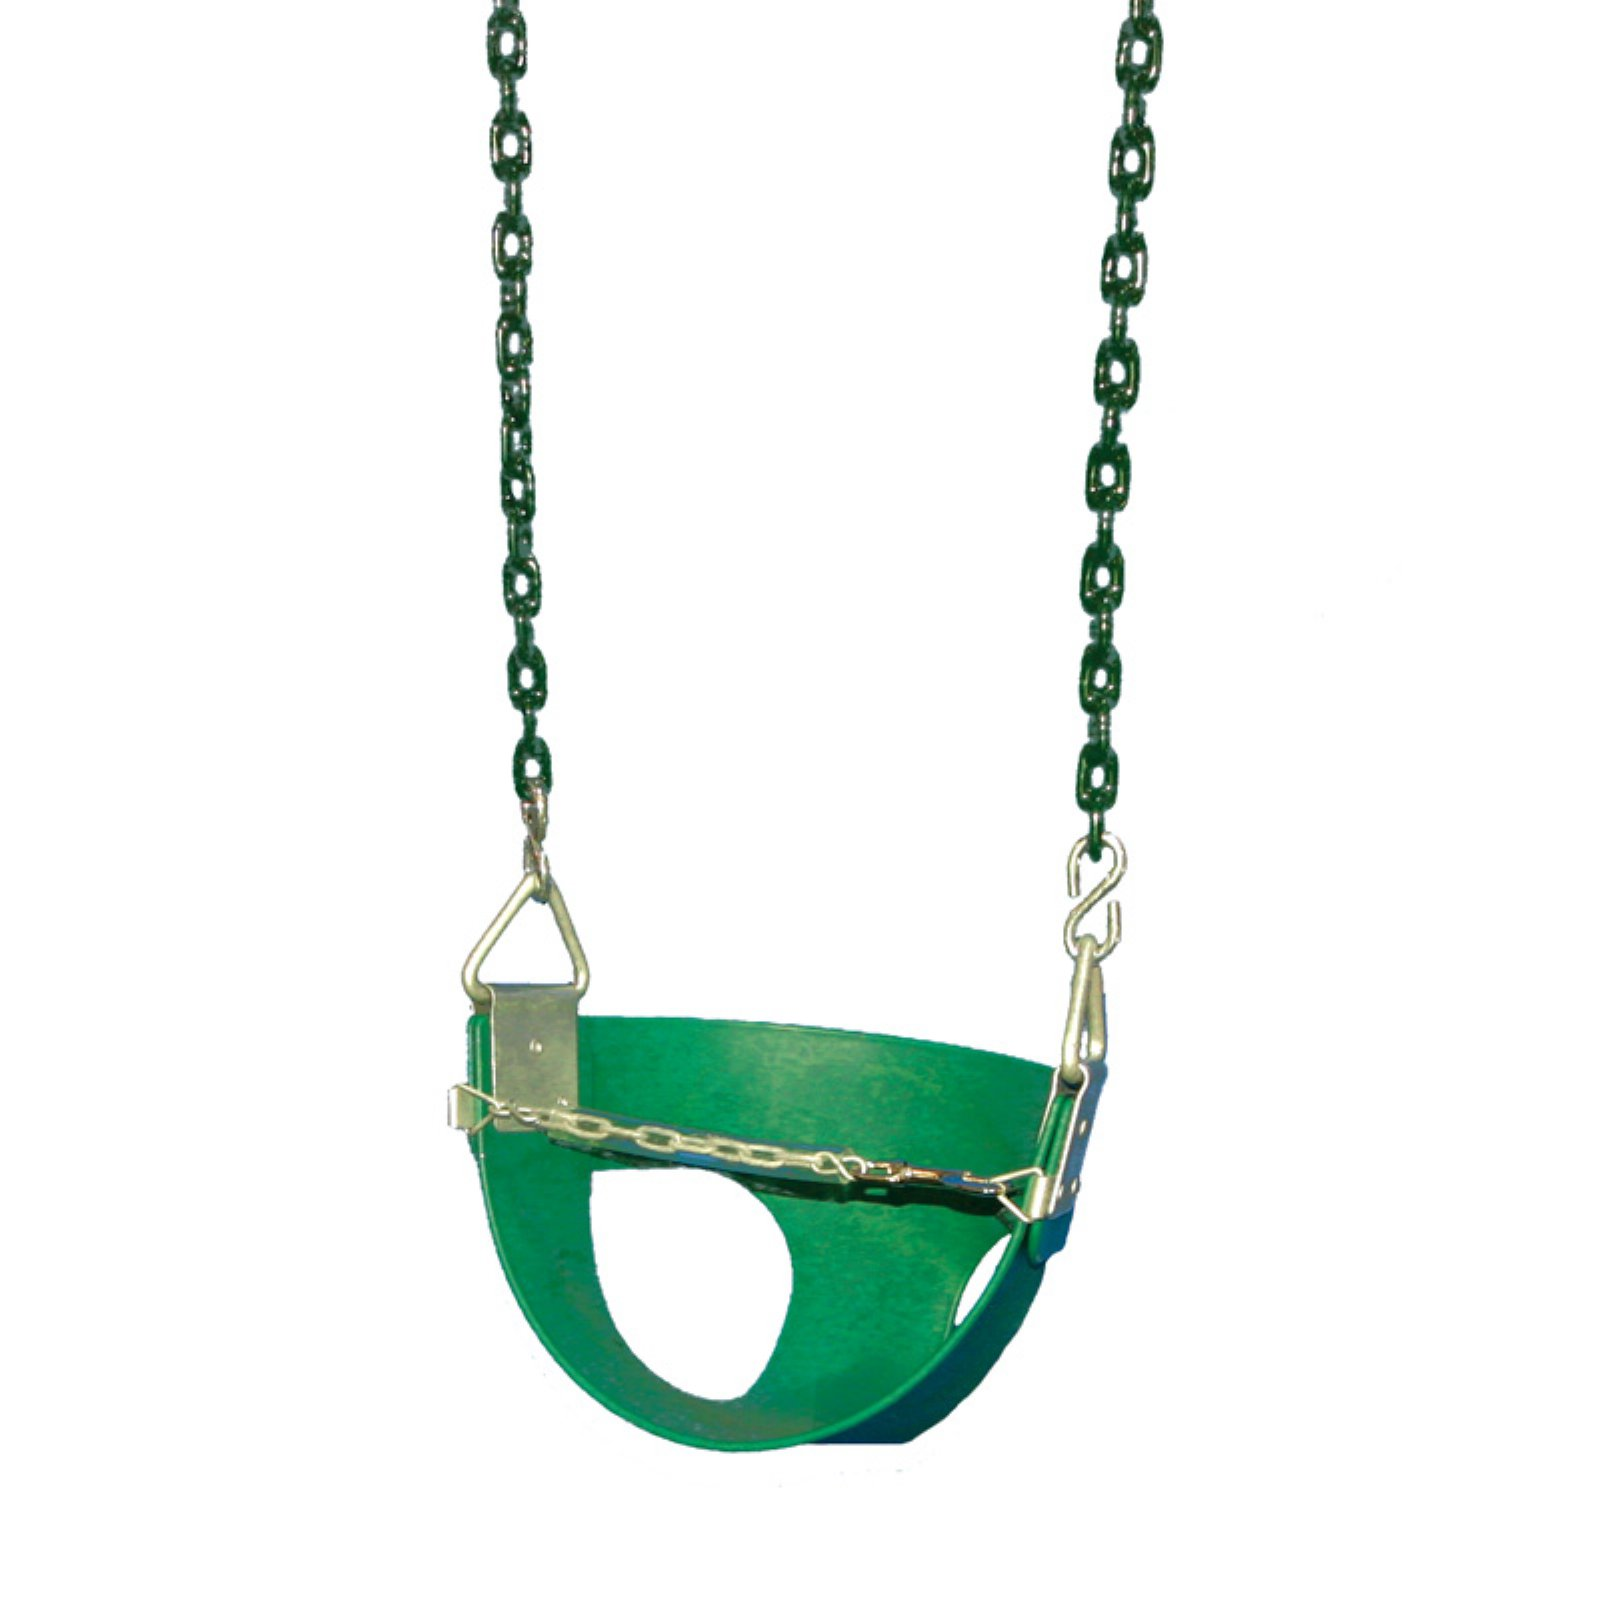 Gorilla Playsets Half Bucket Toddler Swing, Green with Green Chains